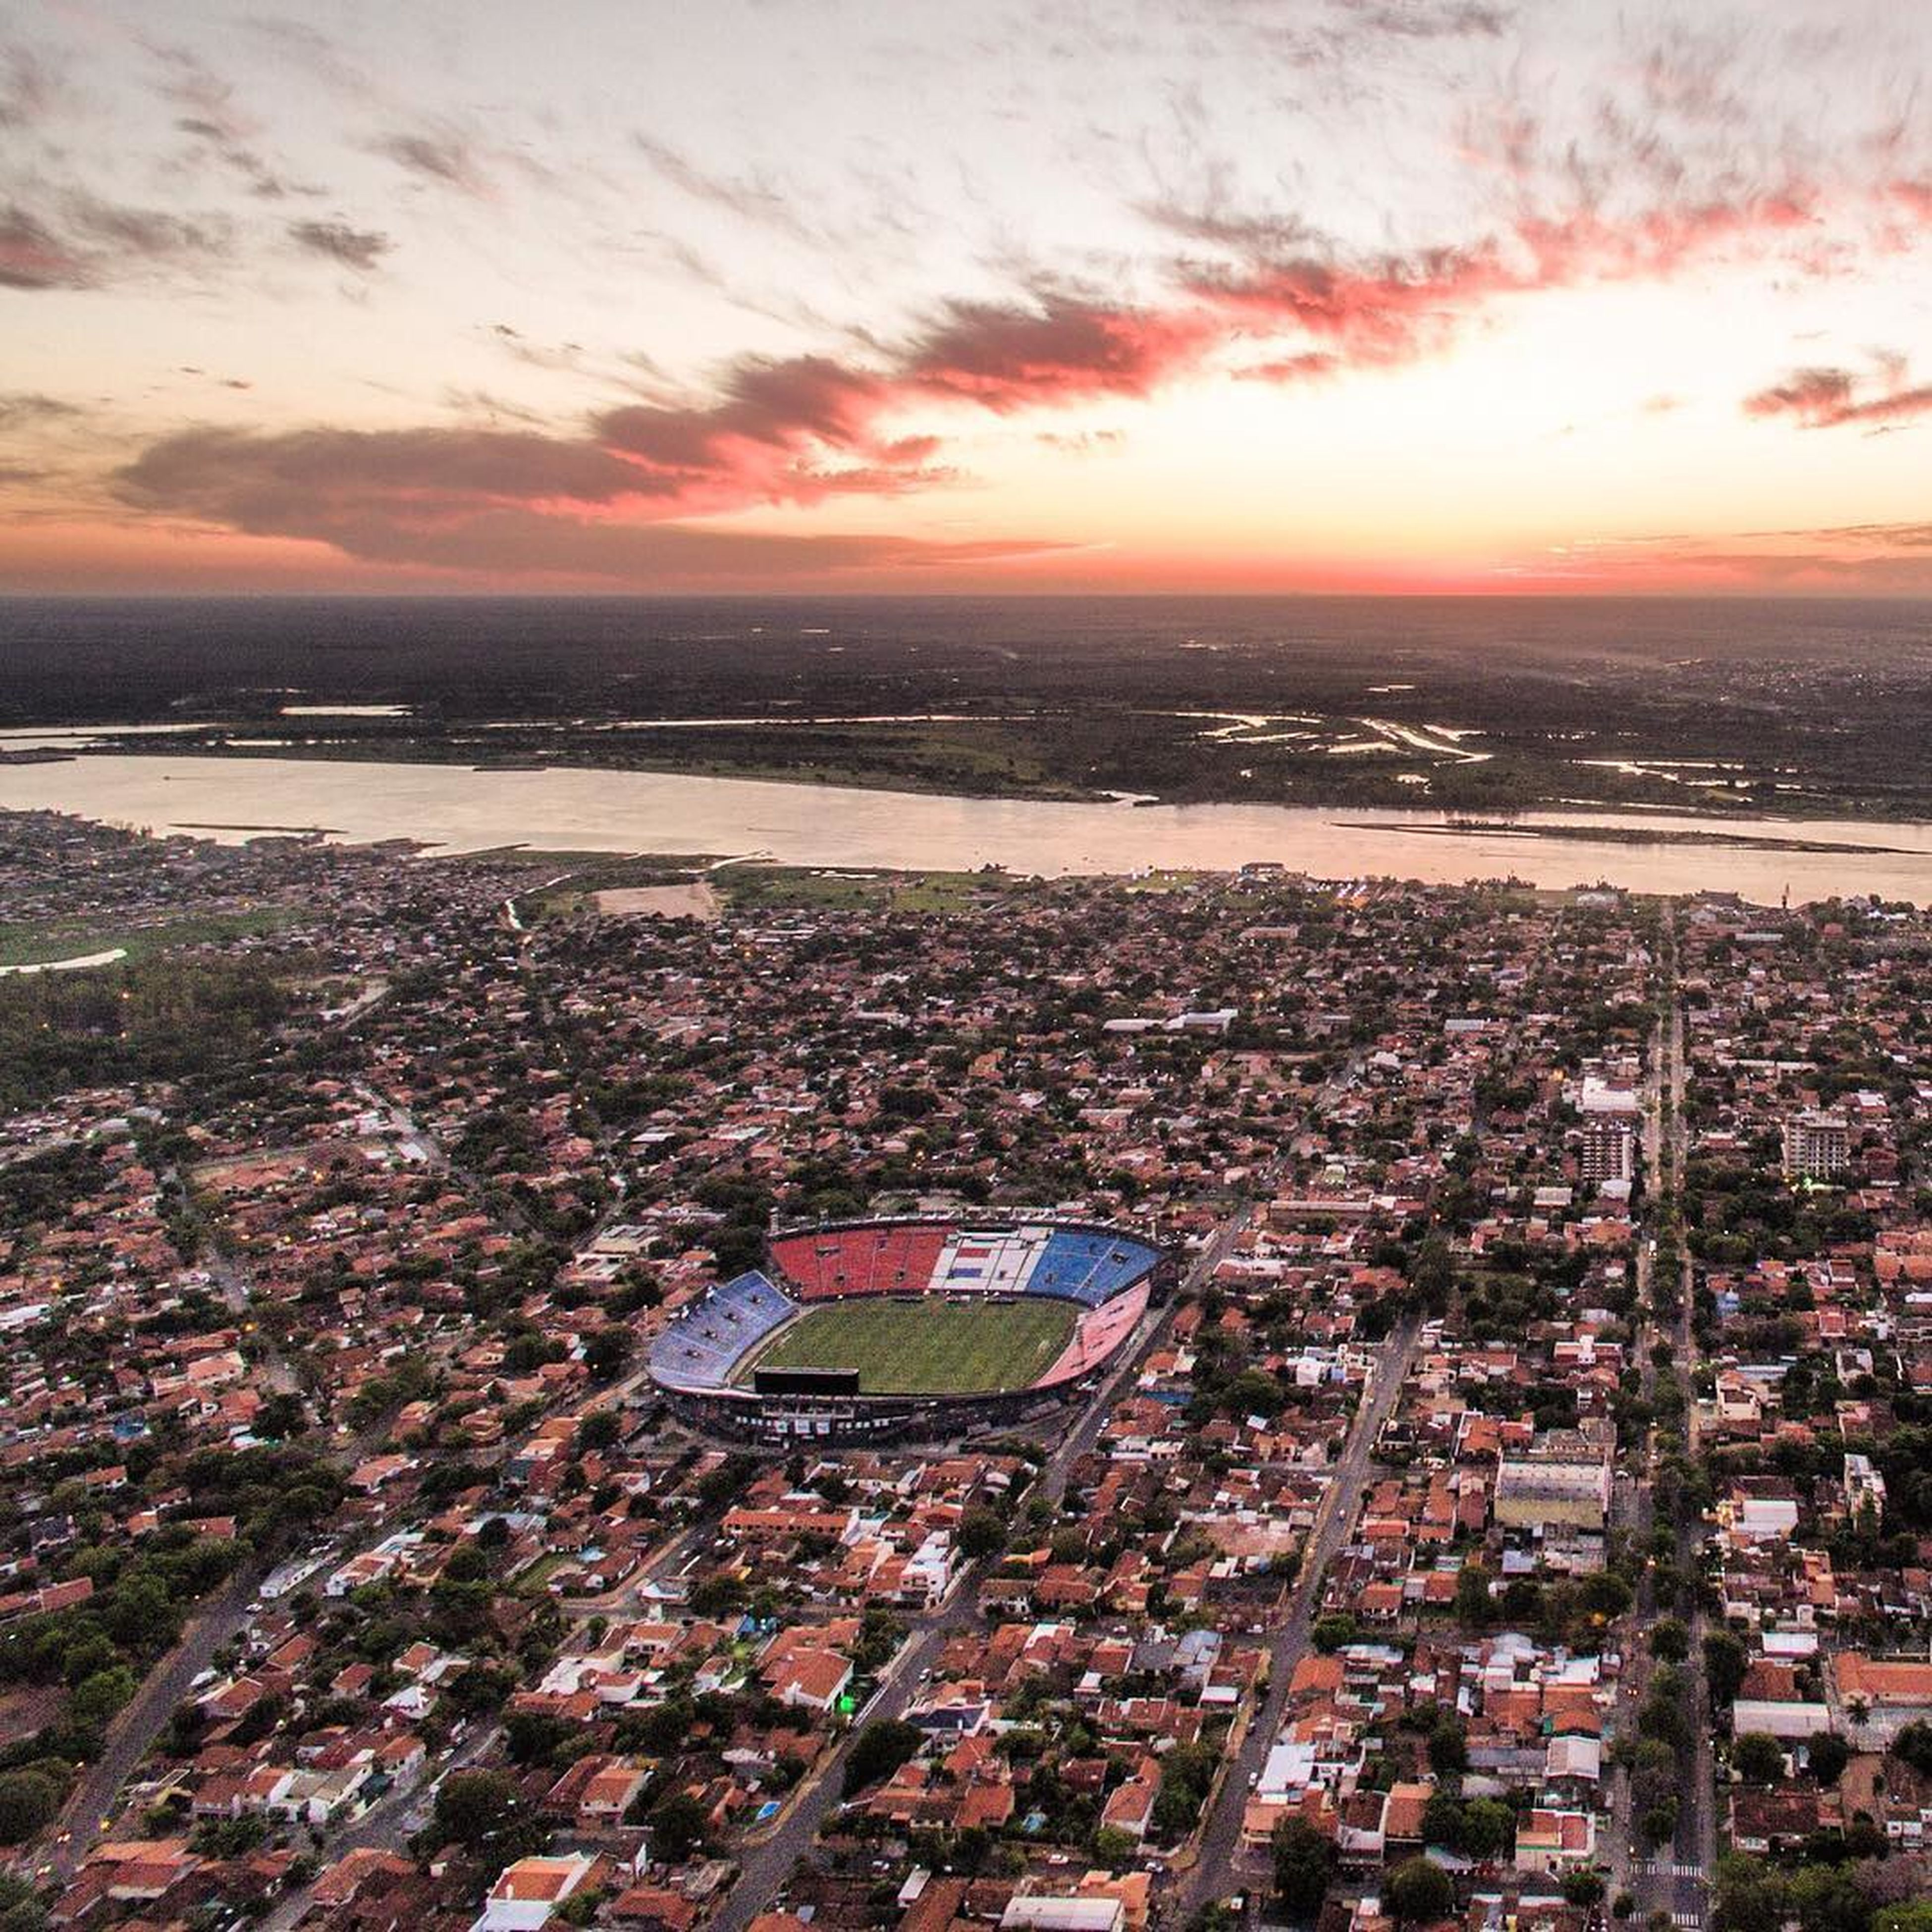 aerial view, cloud - sky, sunset, high angle view, sky, cityscape, outdoors, city, no people, growth, scenics, water, urban skyline, architecture, nature, stadium, day